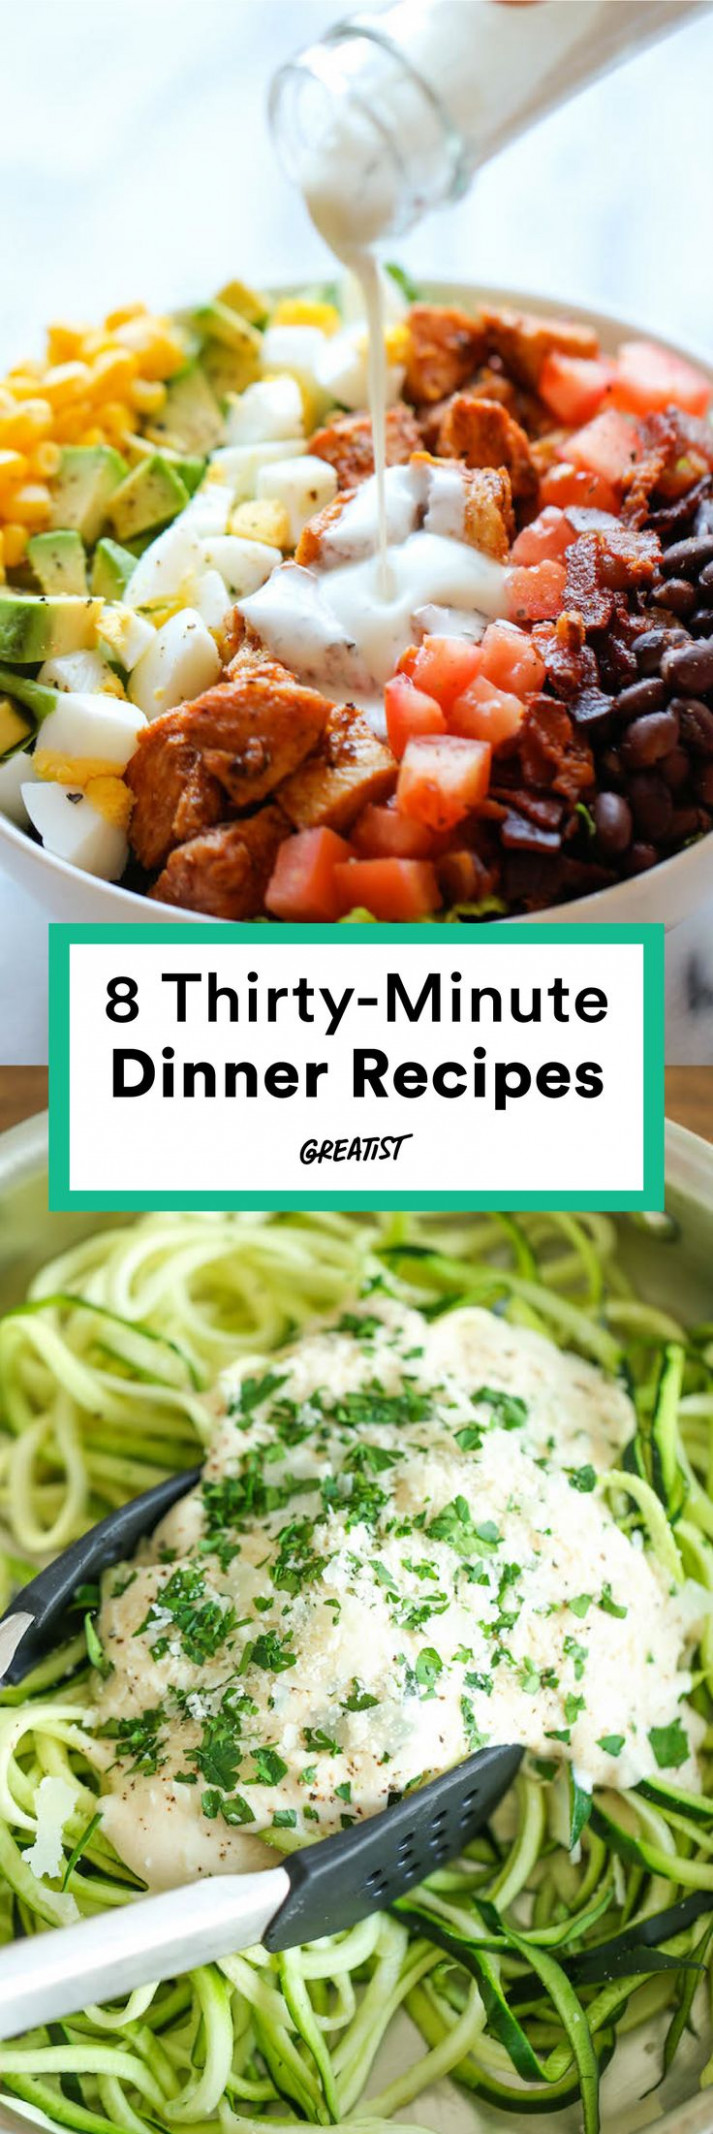 30 Minute Dinners You'll Want To Make This Week | Healthy ..